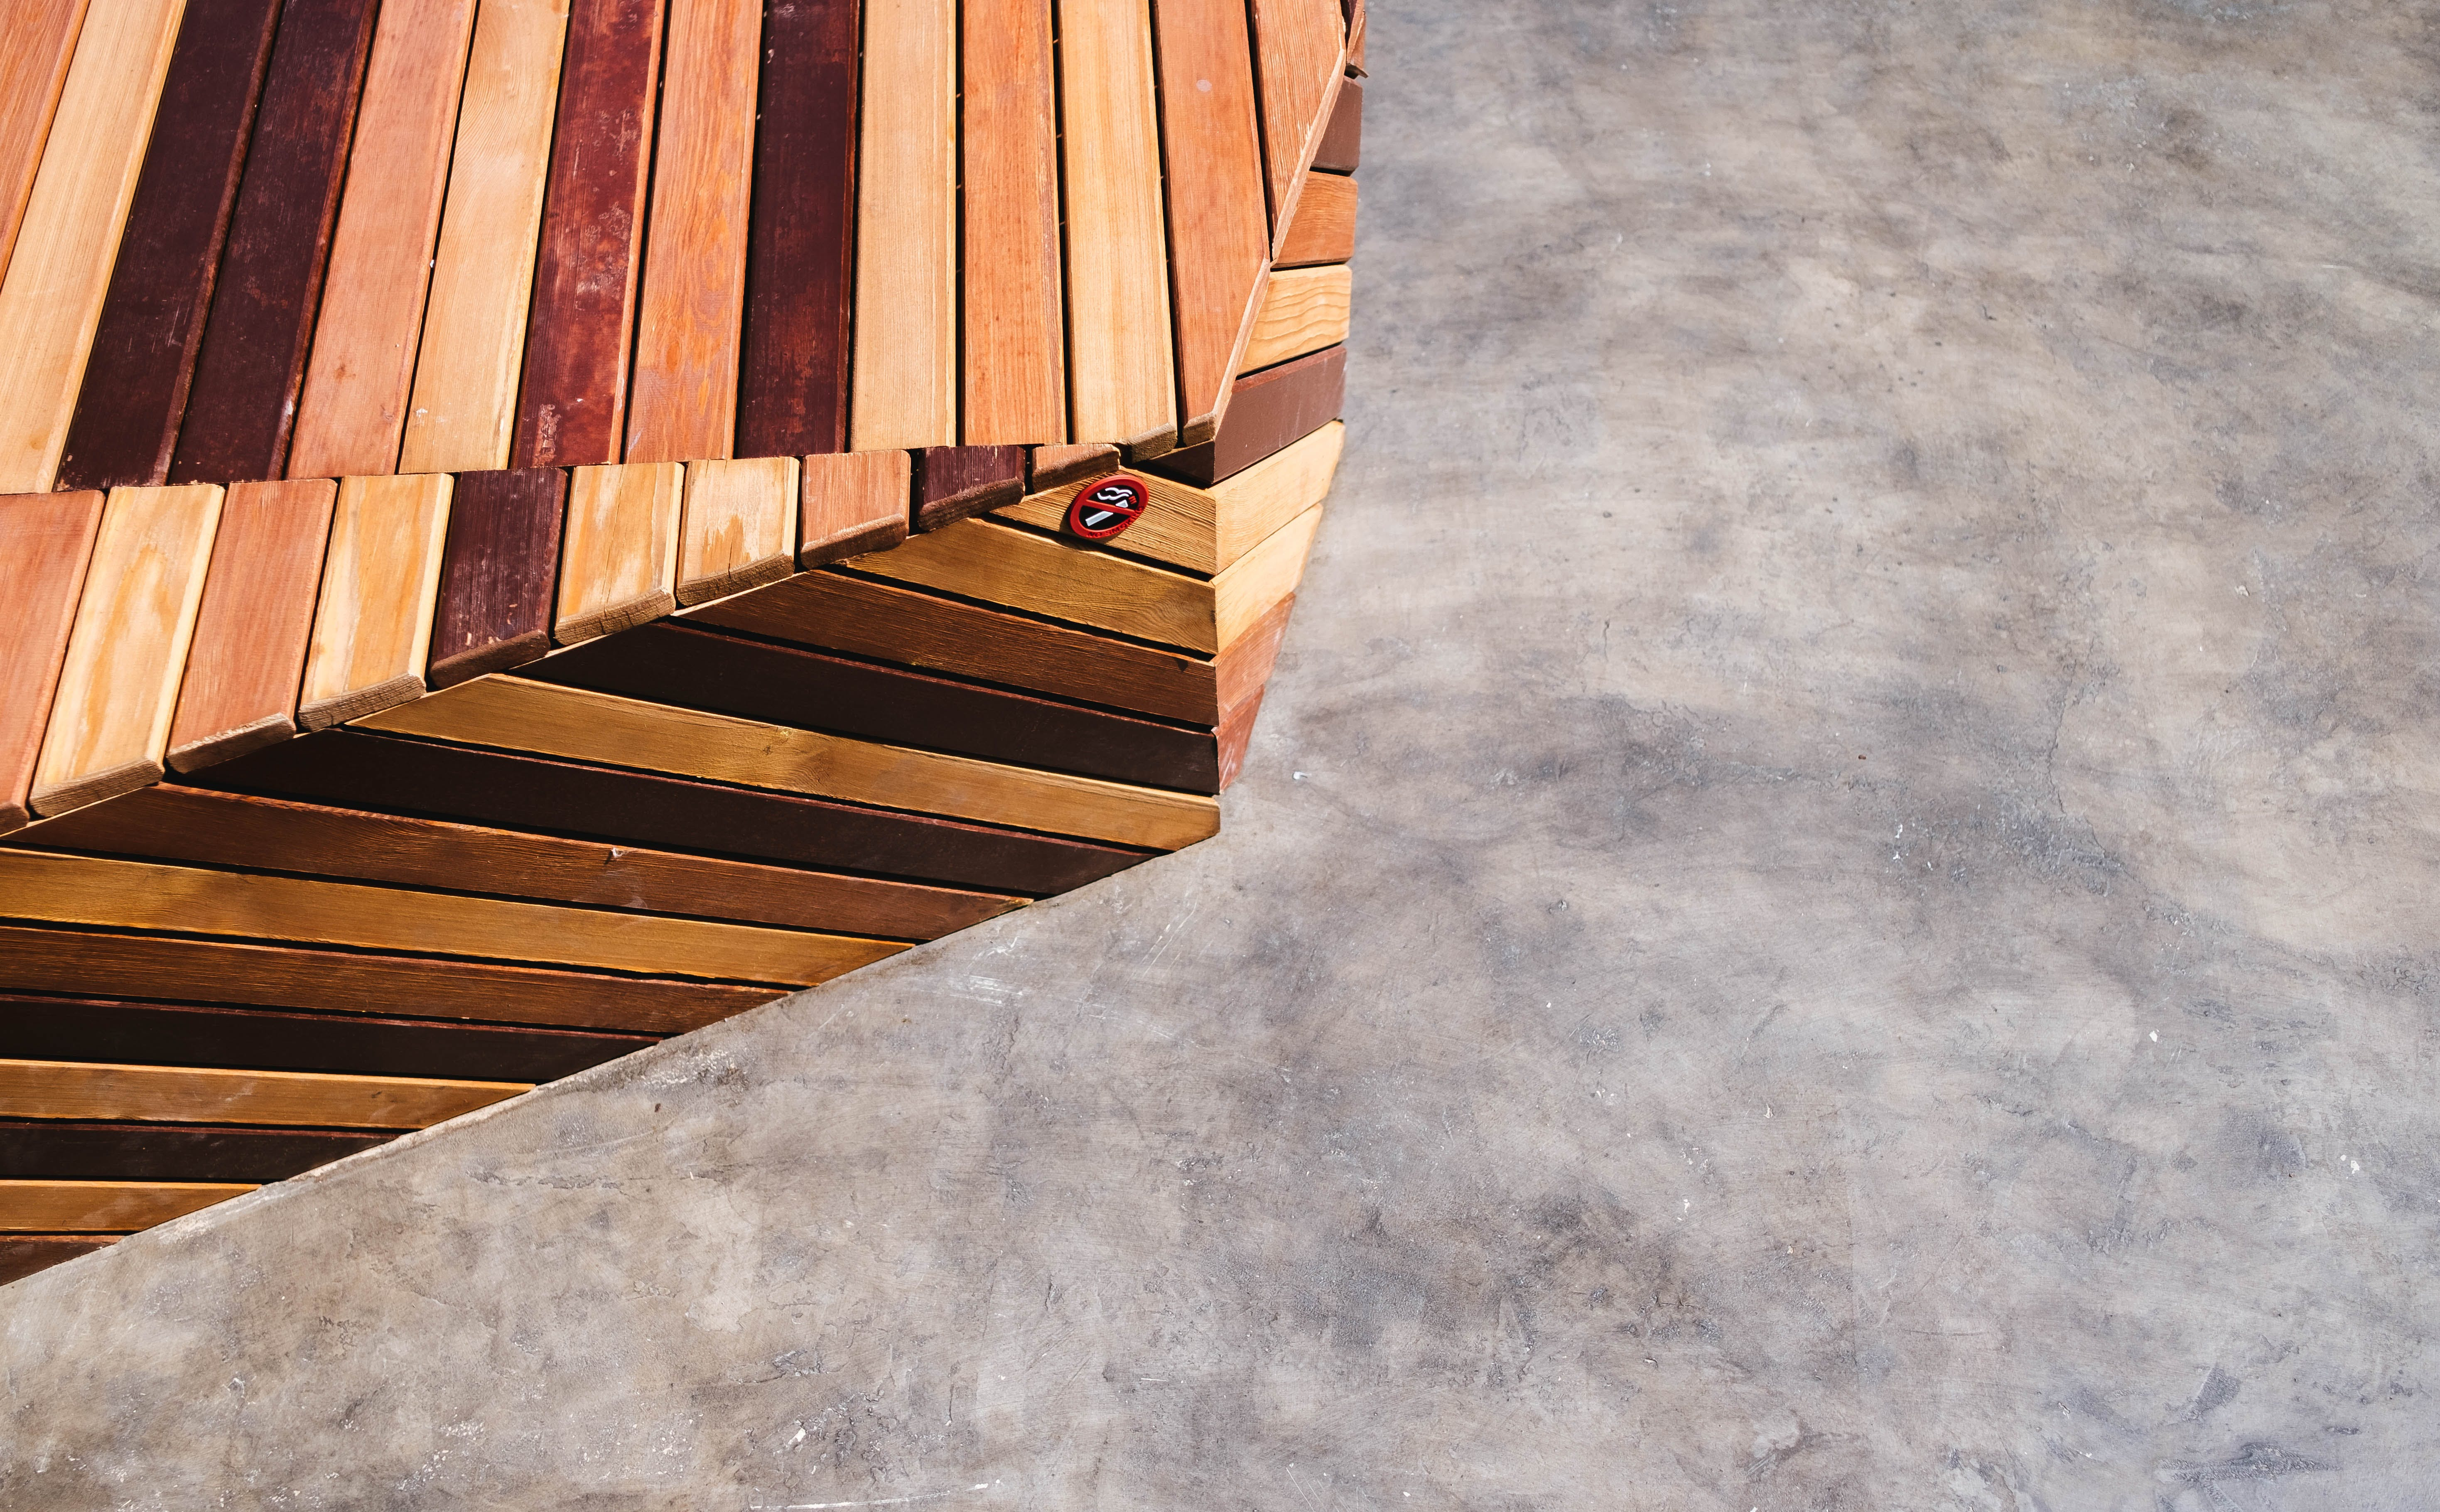 Close-Up Photography of a Wooden Edge